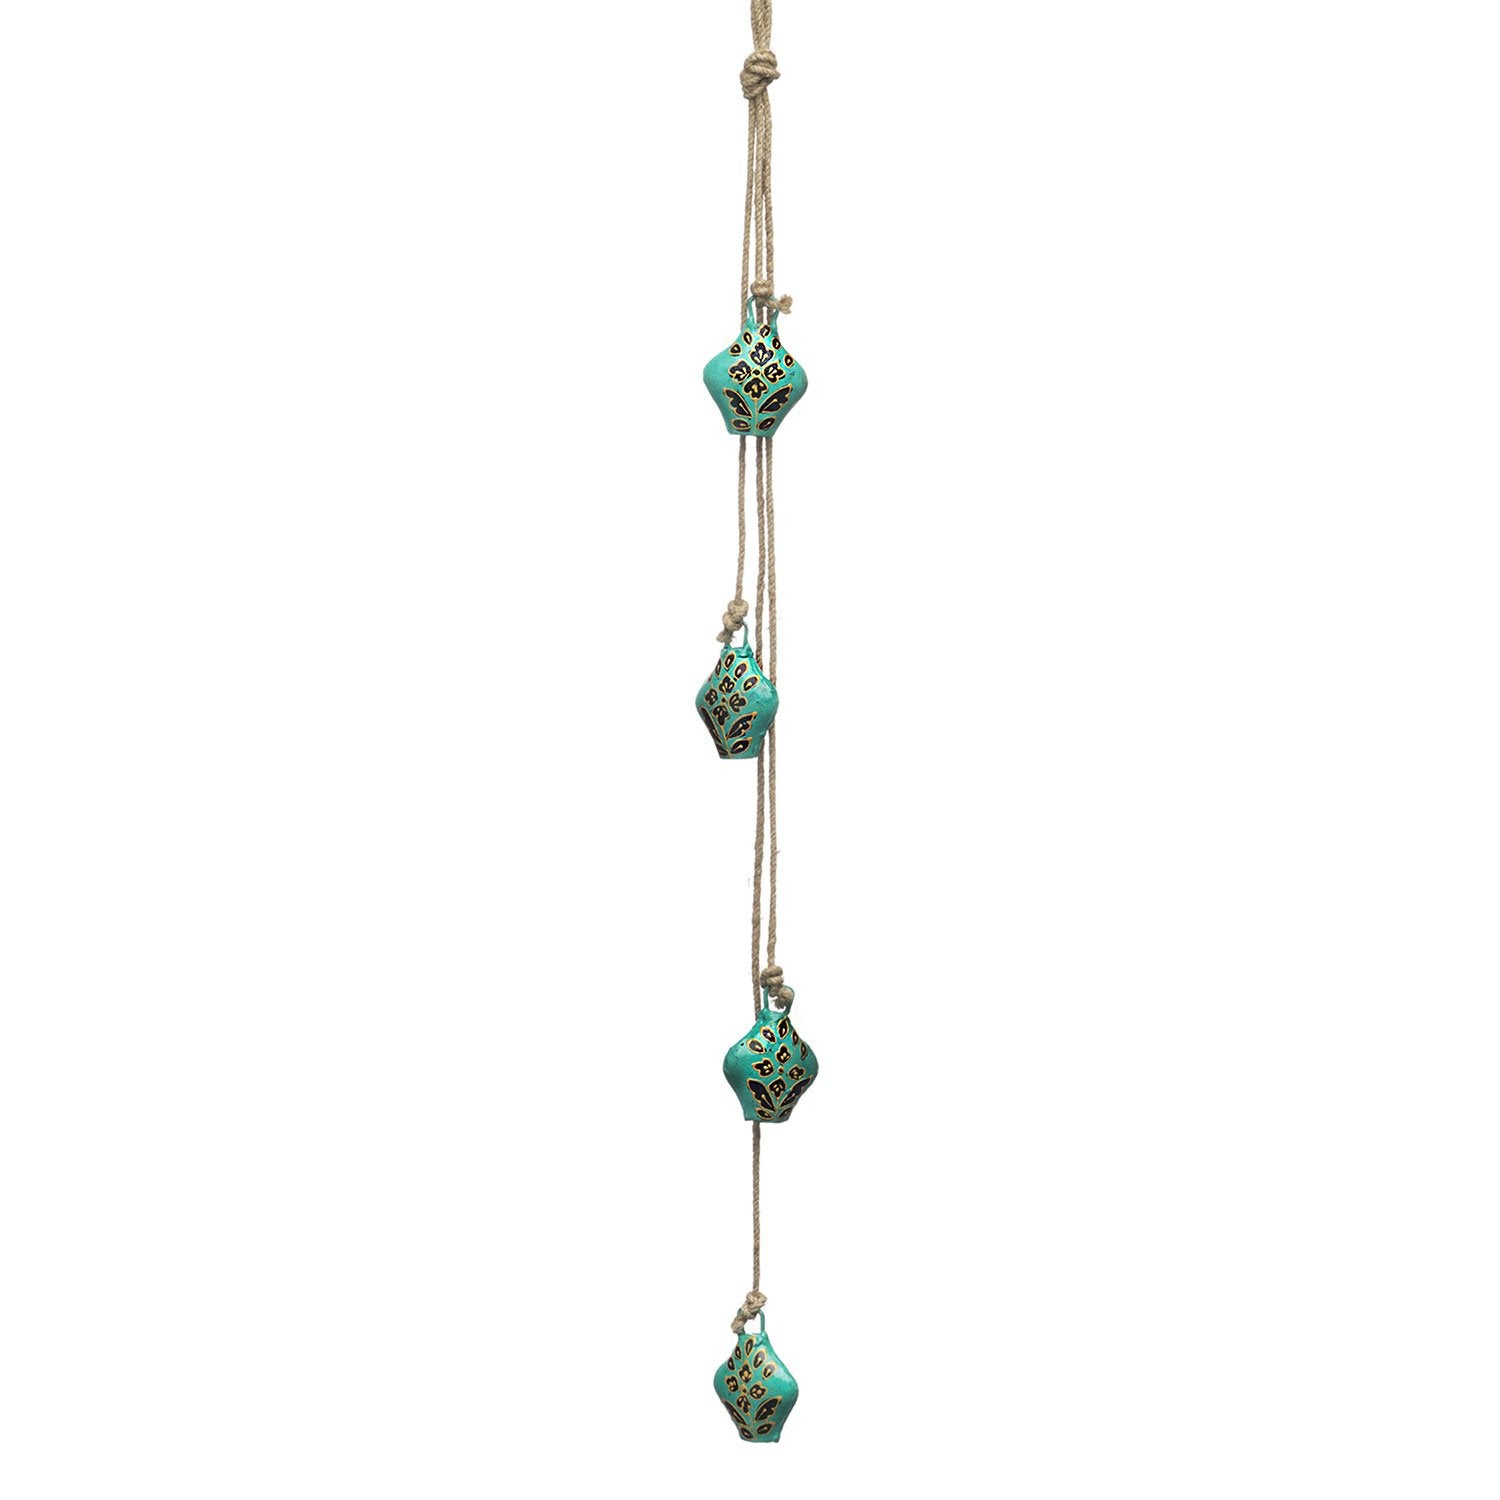 Henna Treasure Bell Cascade - Teal